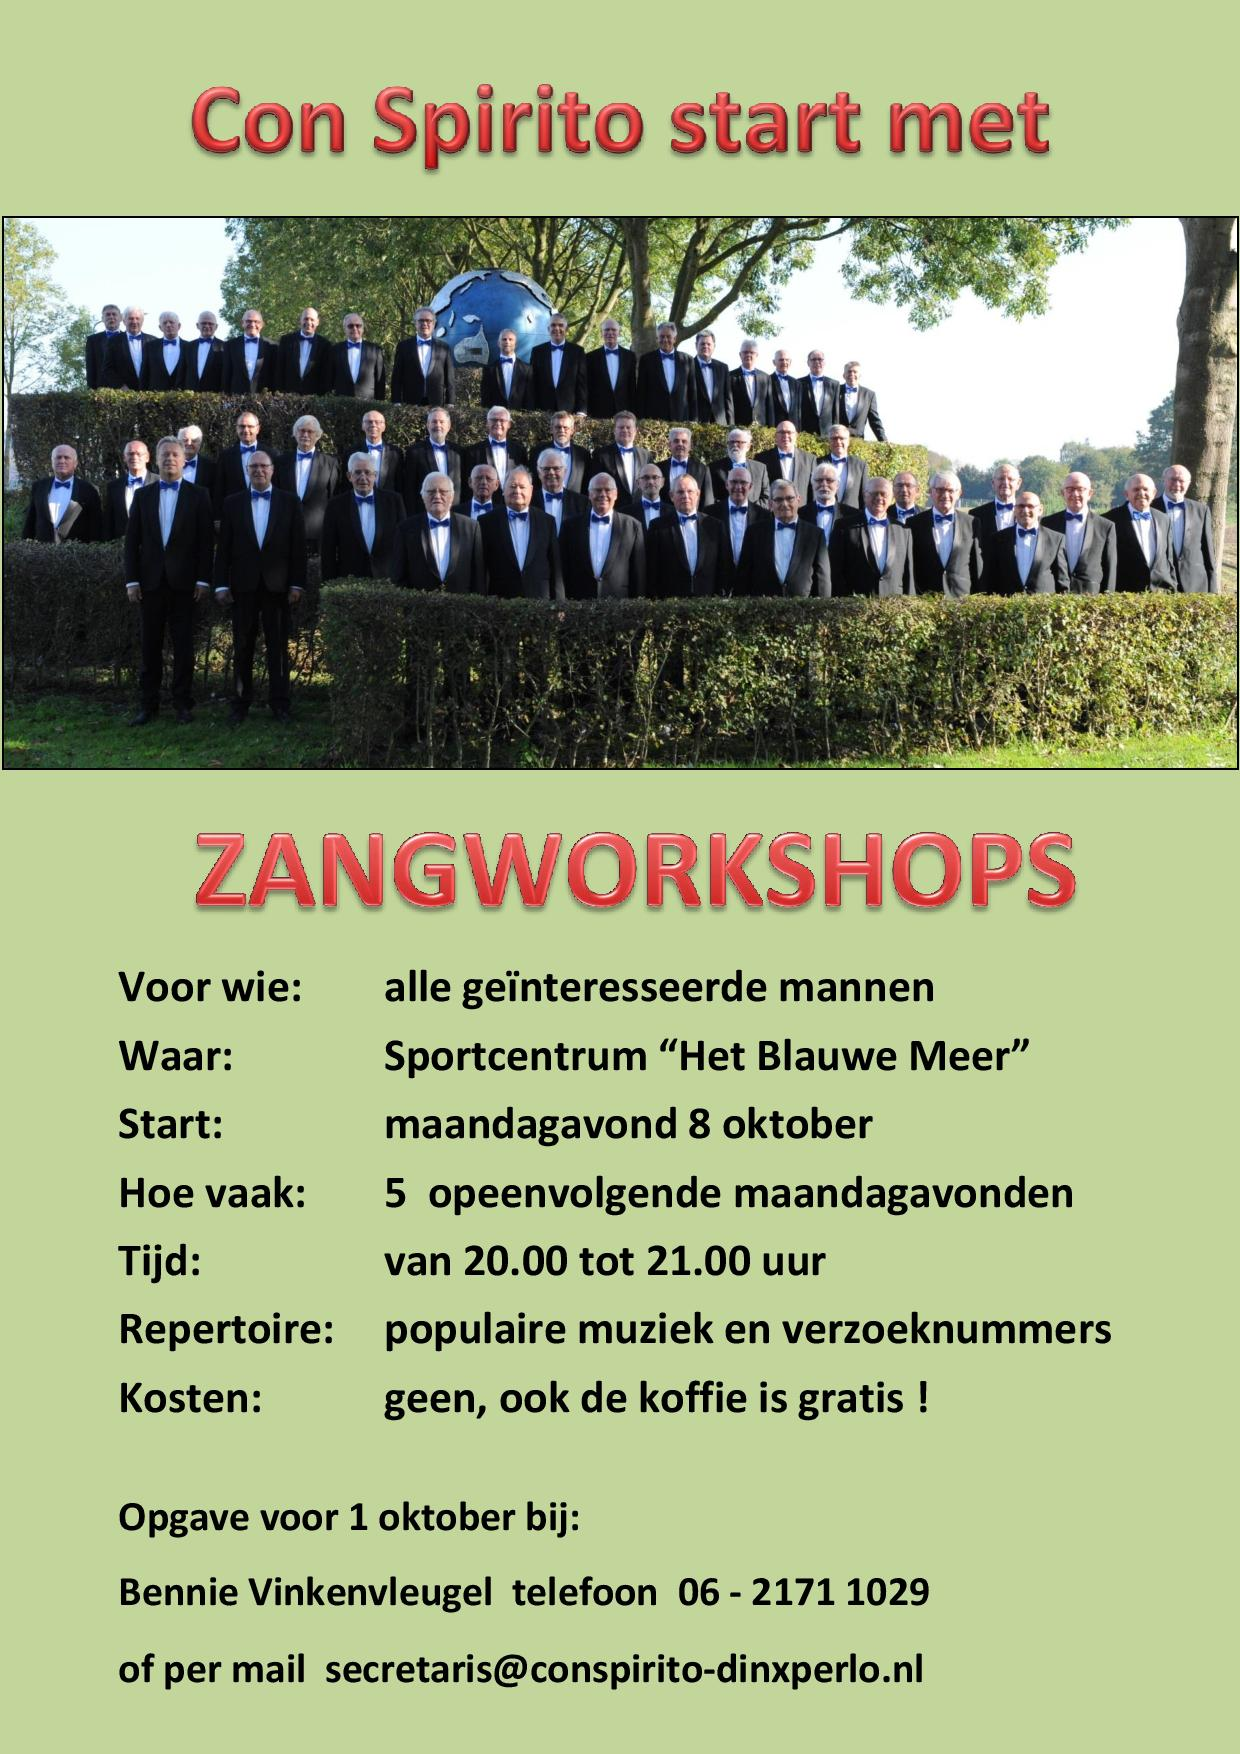 Zangworkshops